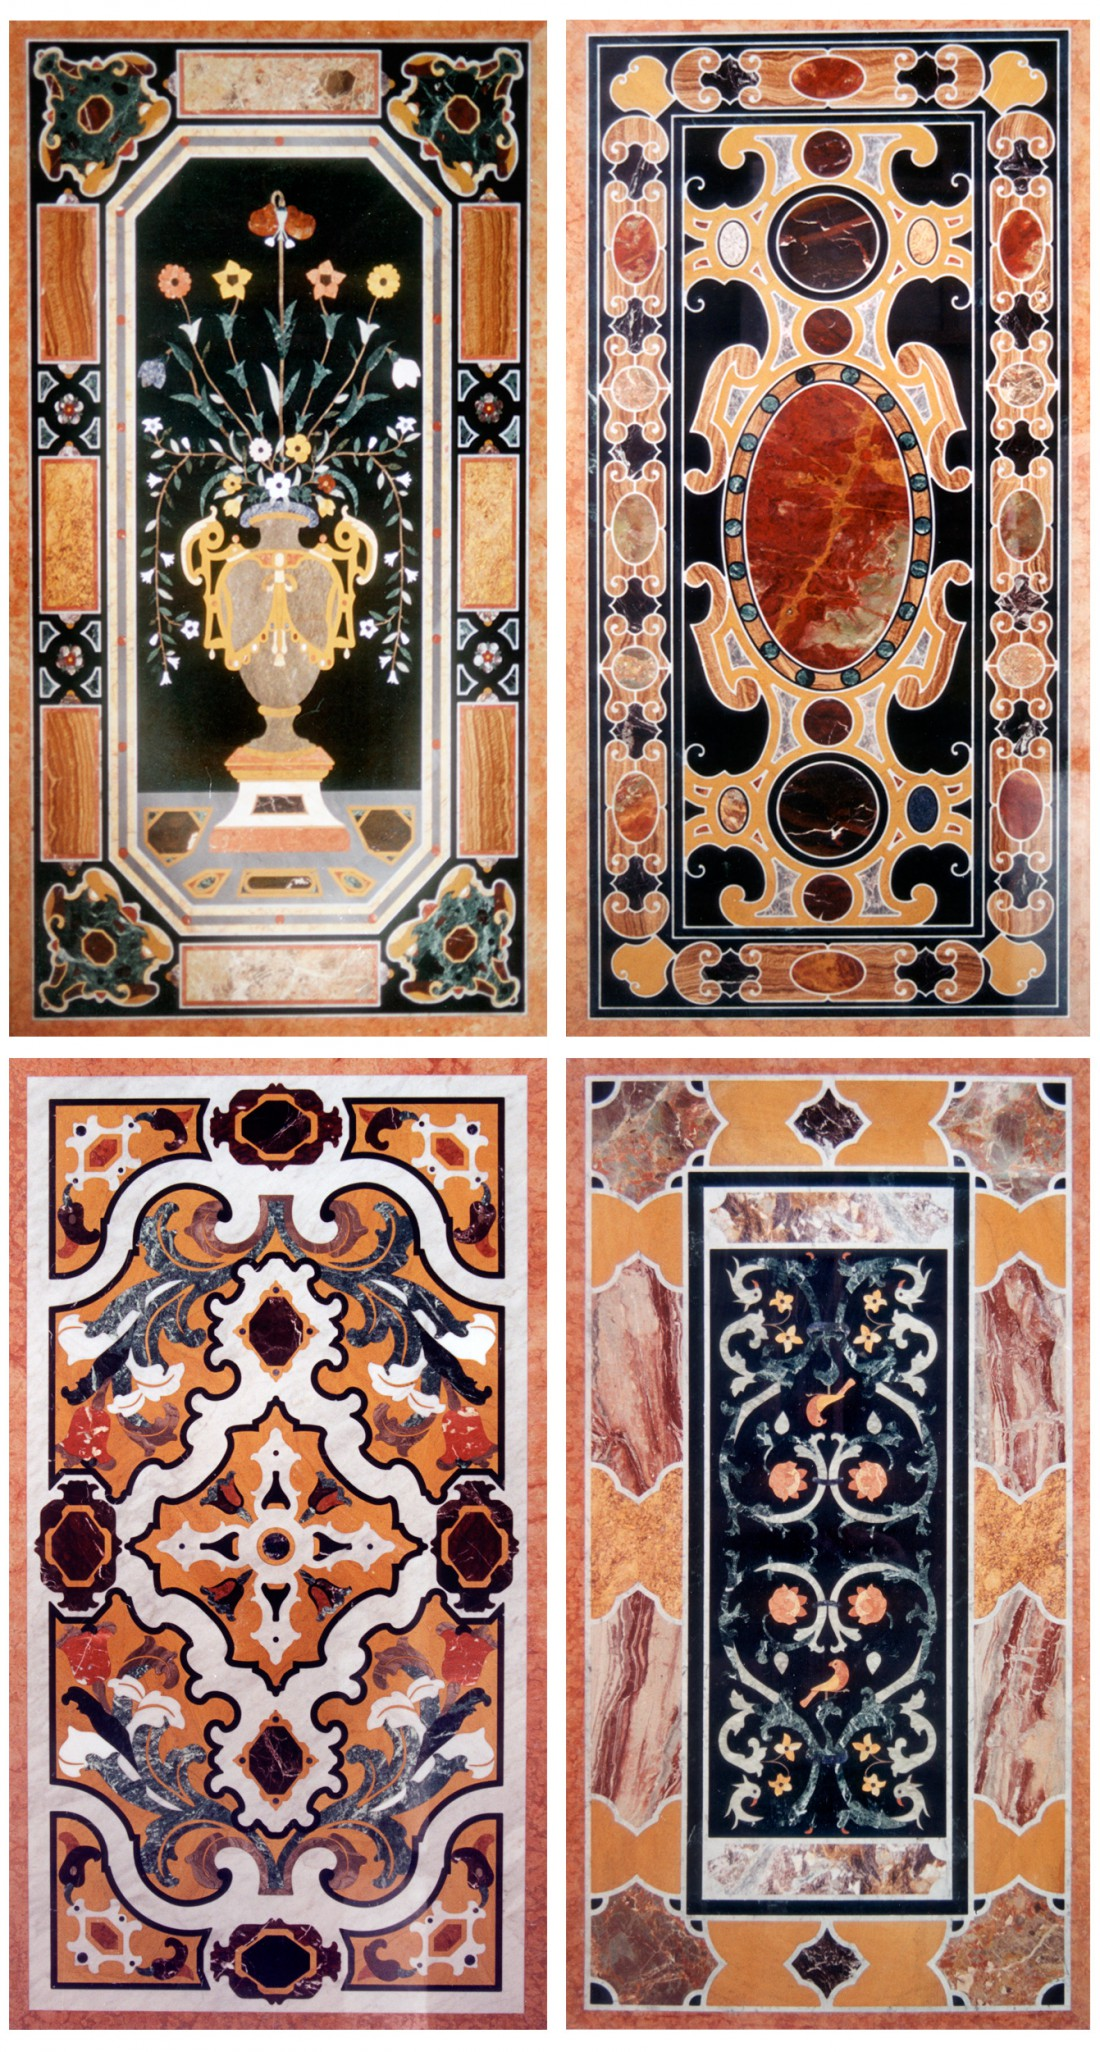 Marble Tables Decorations - Inlay